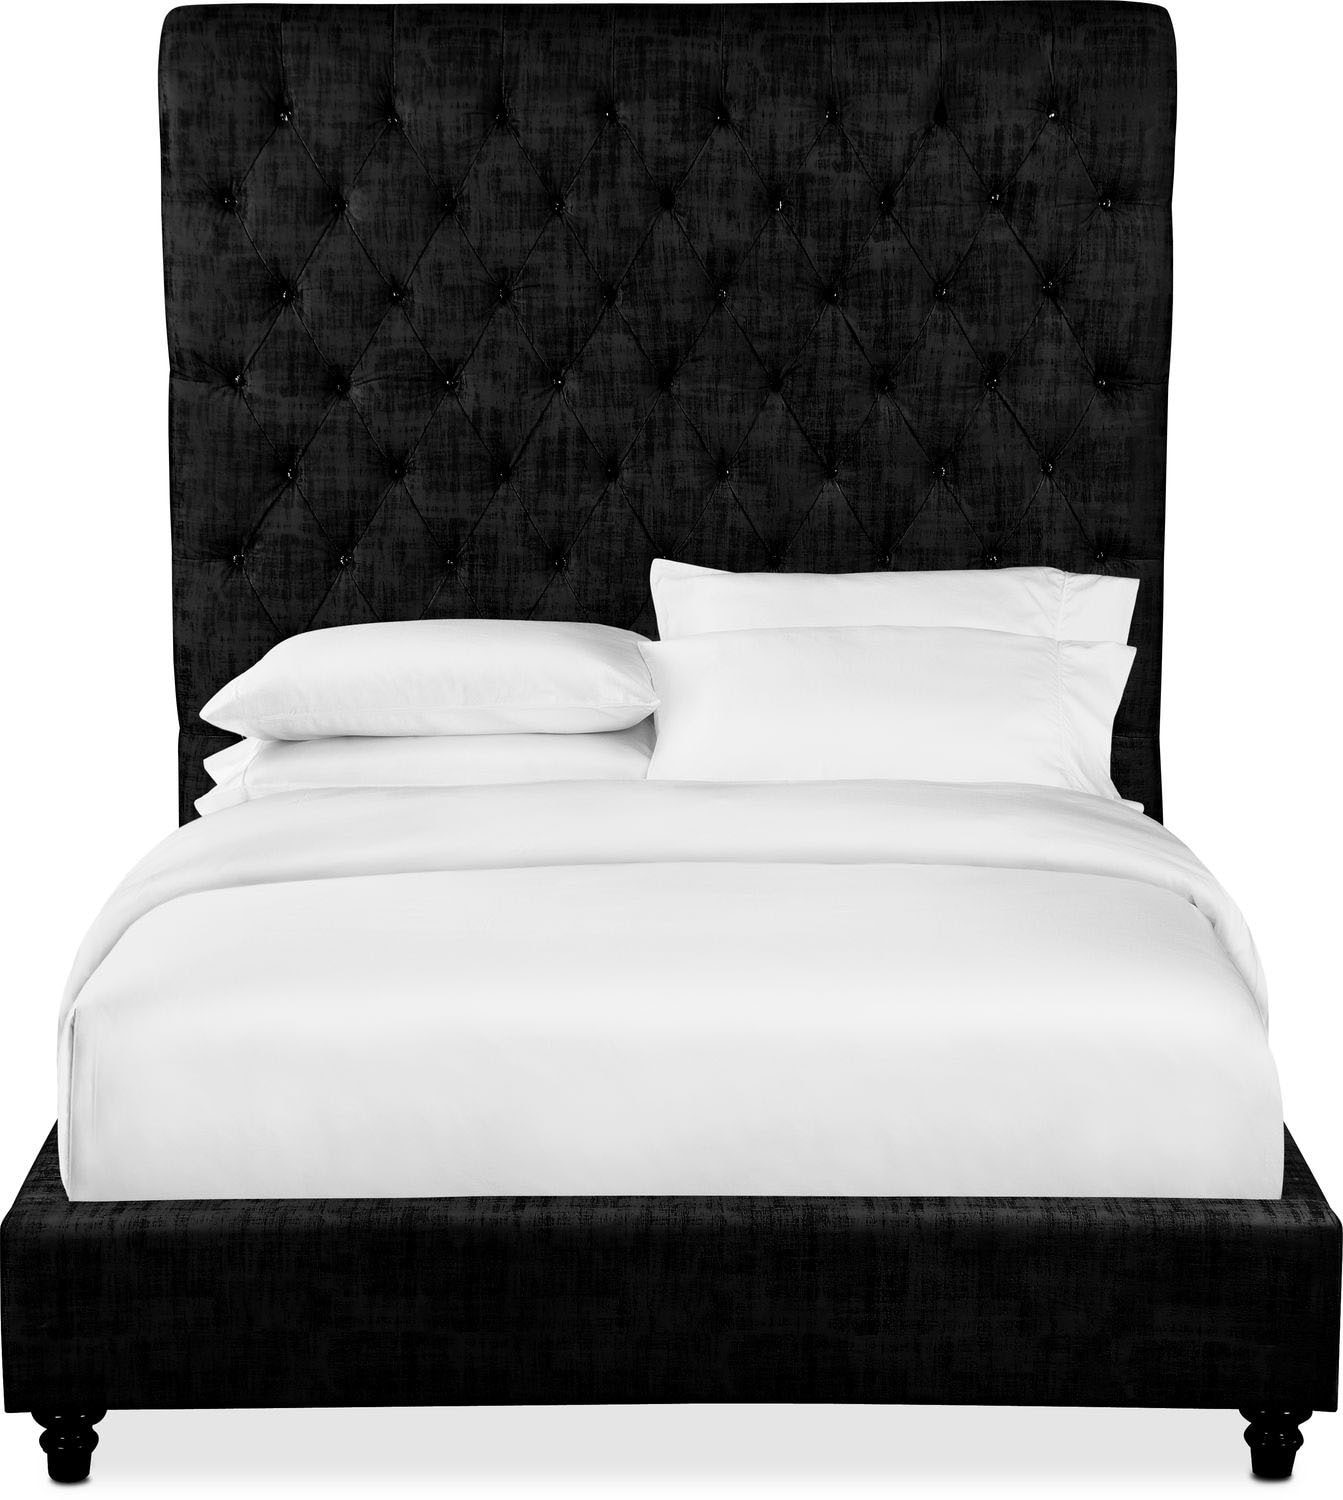 Diana Queen Upholstered Bed - Black | American Signature Furniture